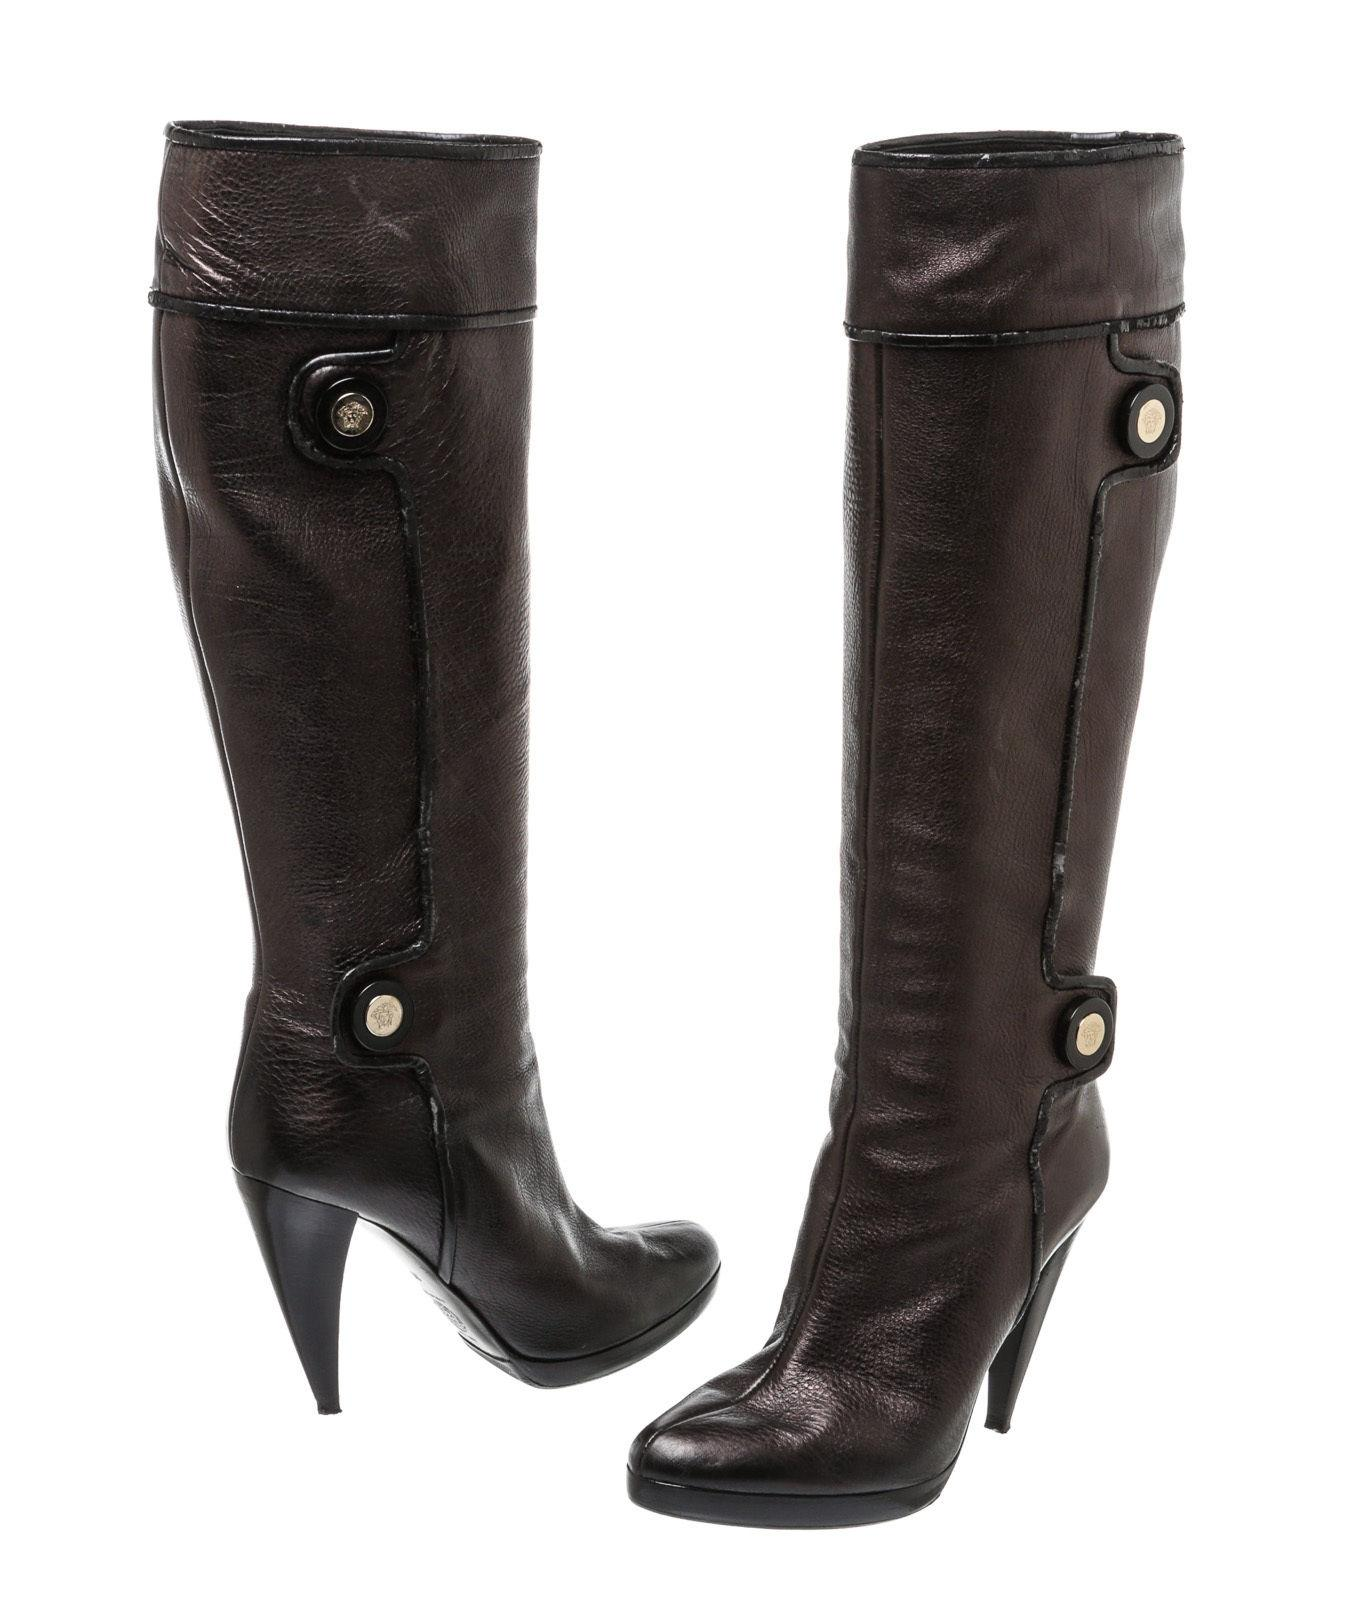 clearance geniue stockist Versace Suede Knee-High Boots w/ Tags factory outlet for sale cheap clearance free shipping cost IOc1HV